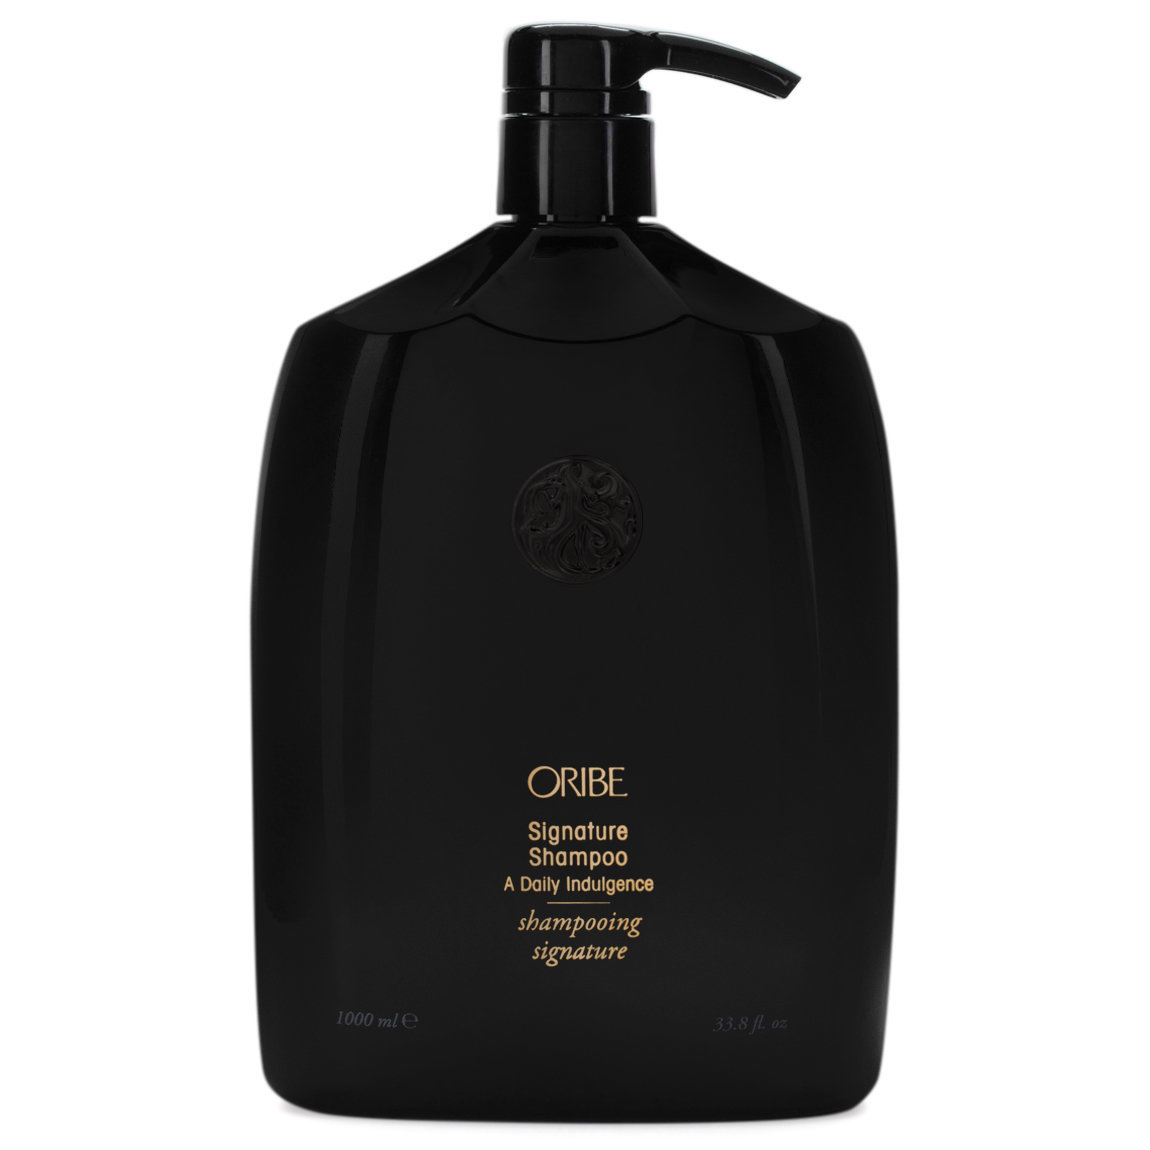 Oribe Signature Shampoo 1 L product swatch.